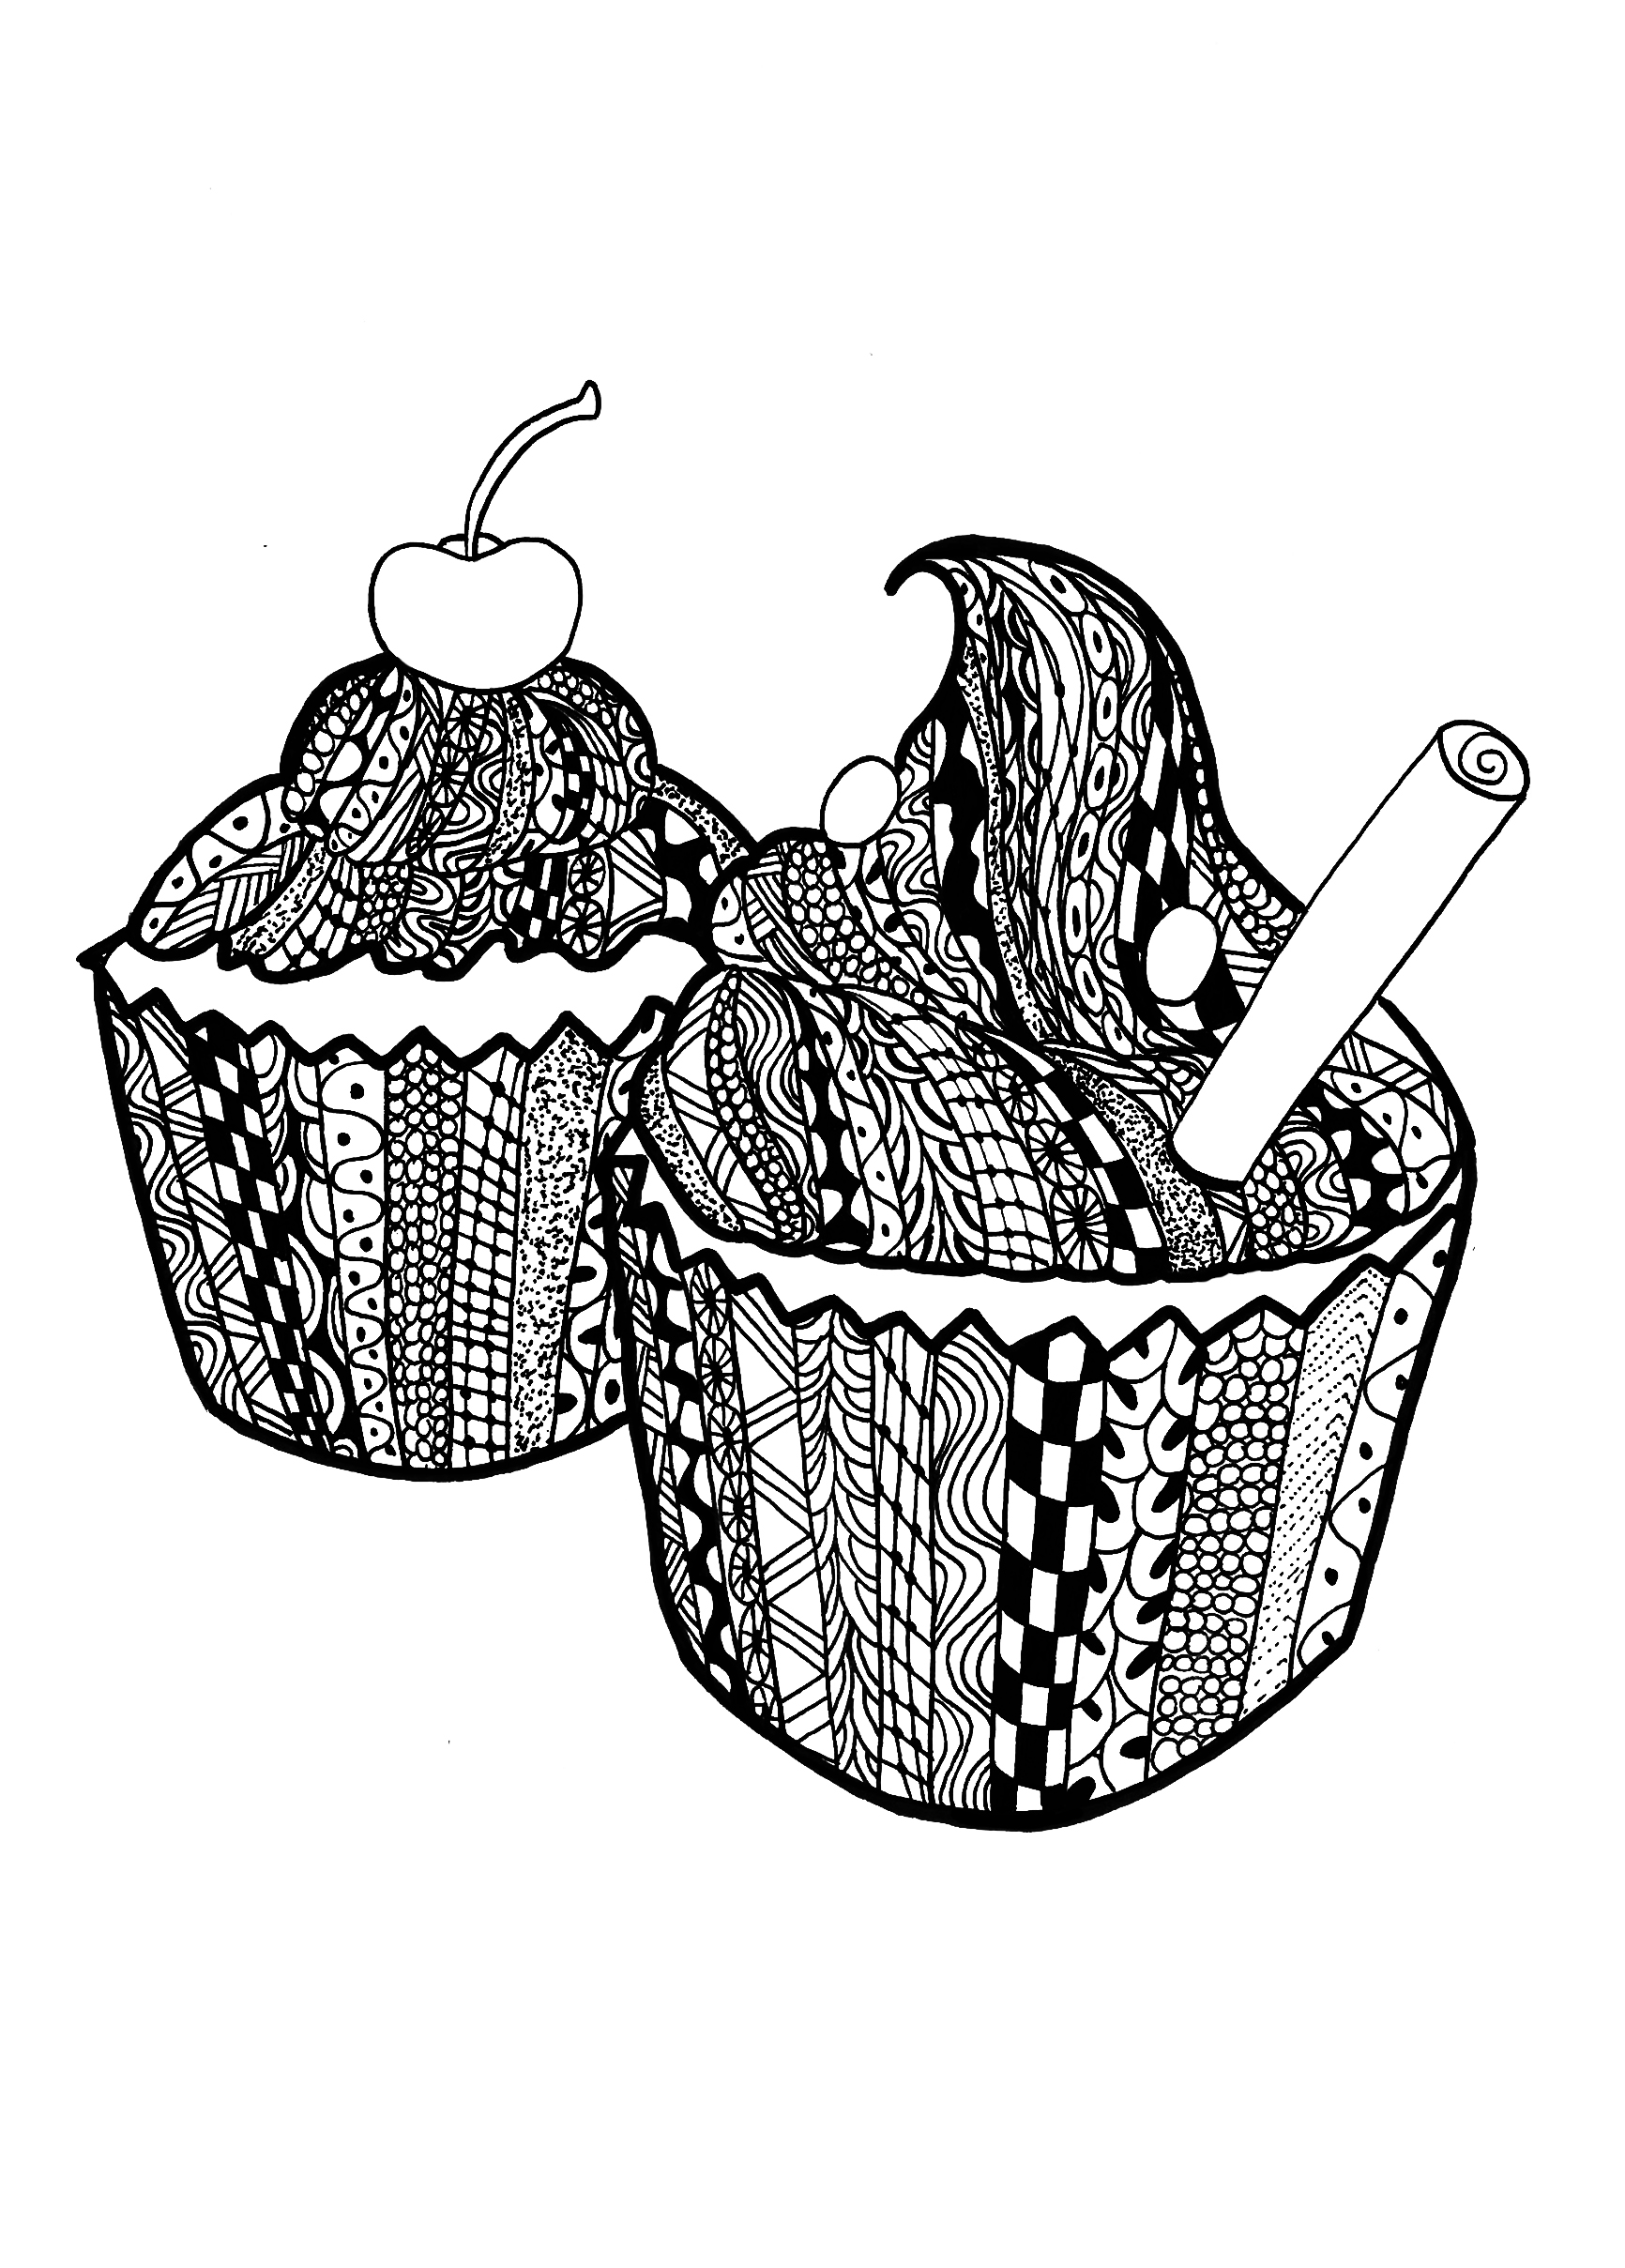 Free printable zentangle coloring pages for adults - Coloring Page Adults Cupcakes Zentangle Celine